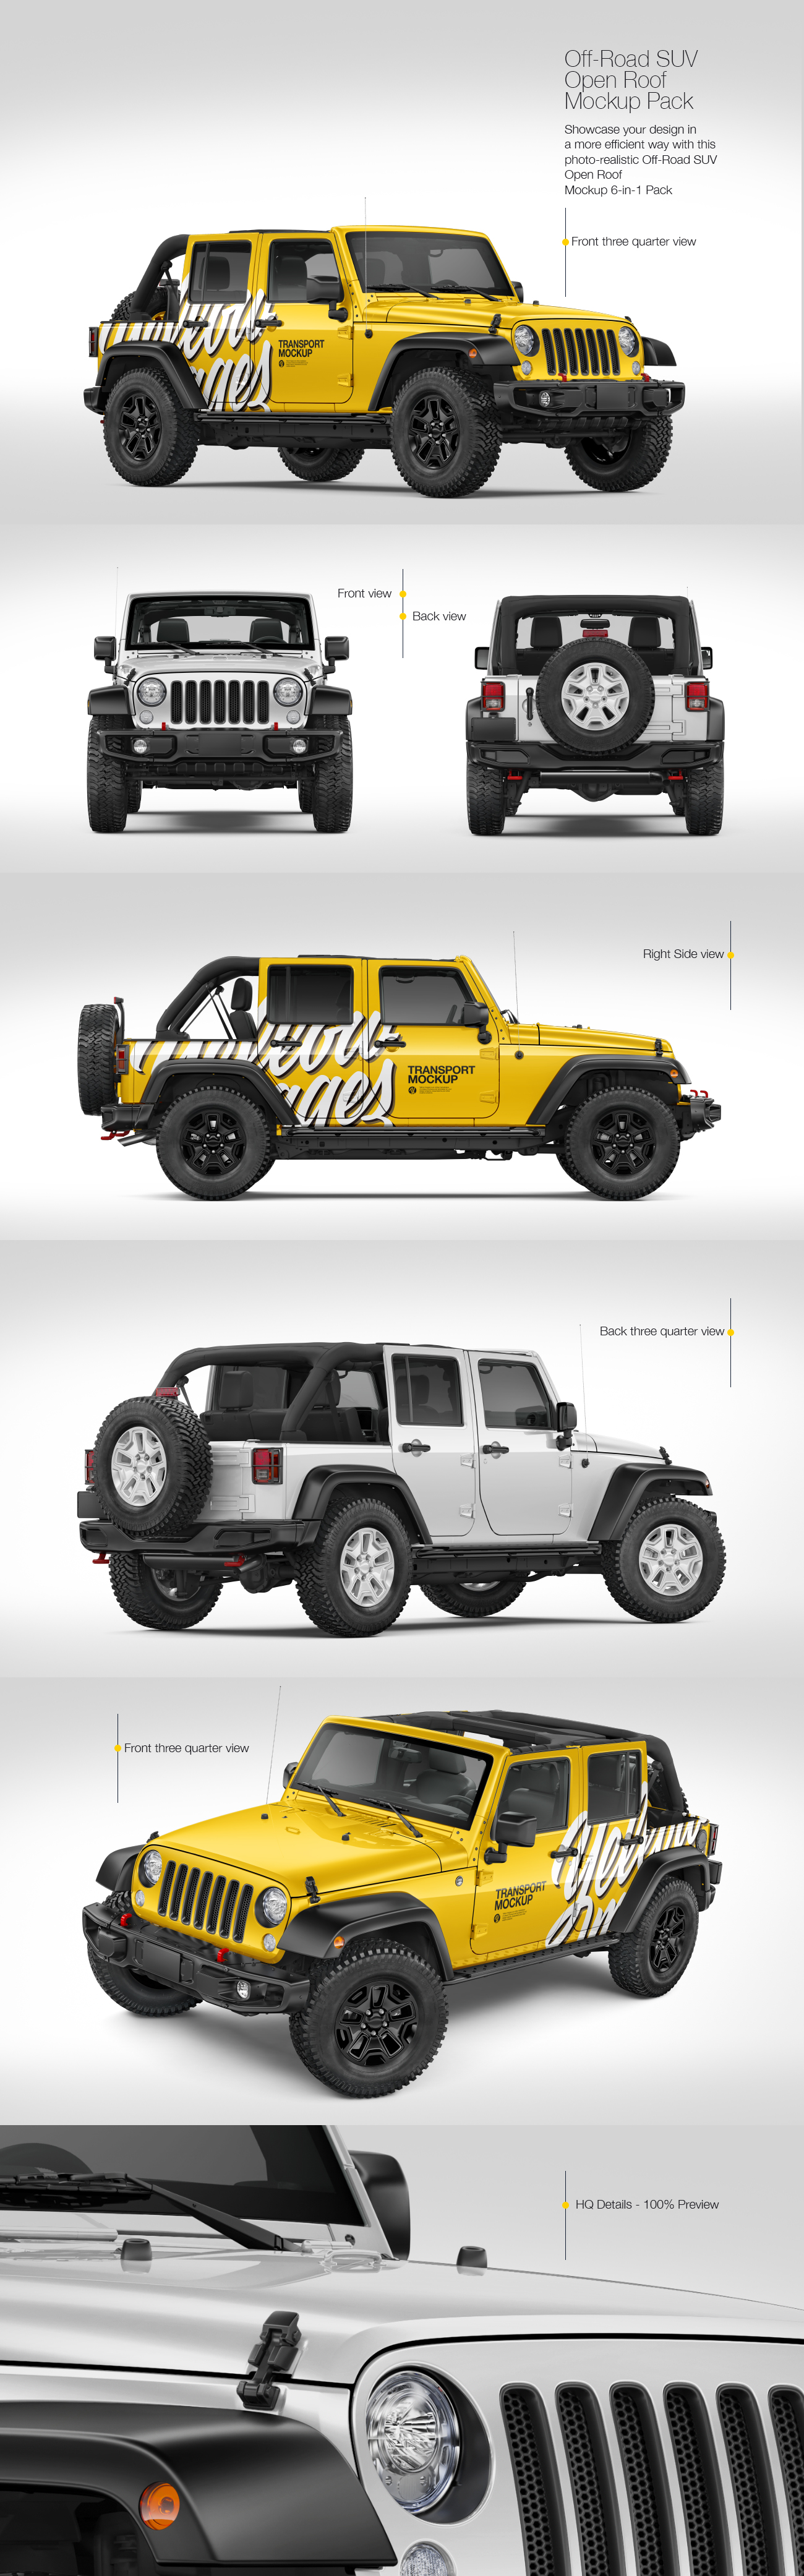 Off-Road SUV Open Roof Mockup Pack